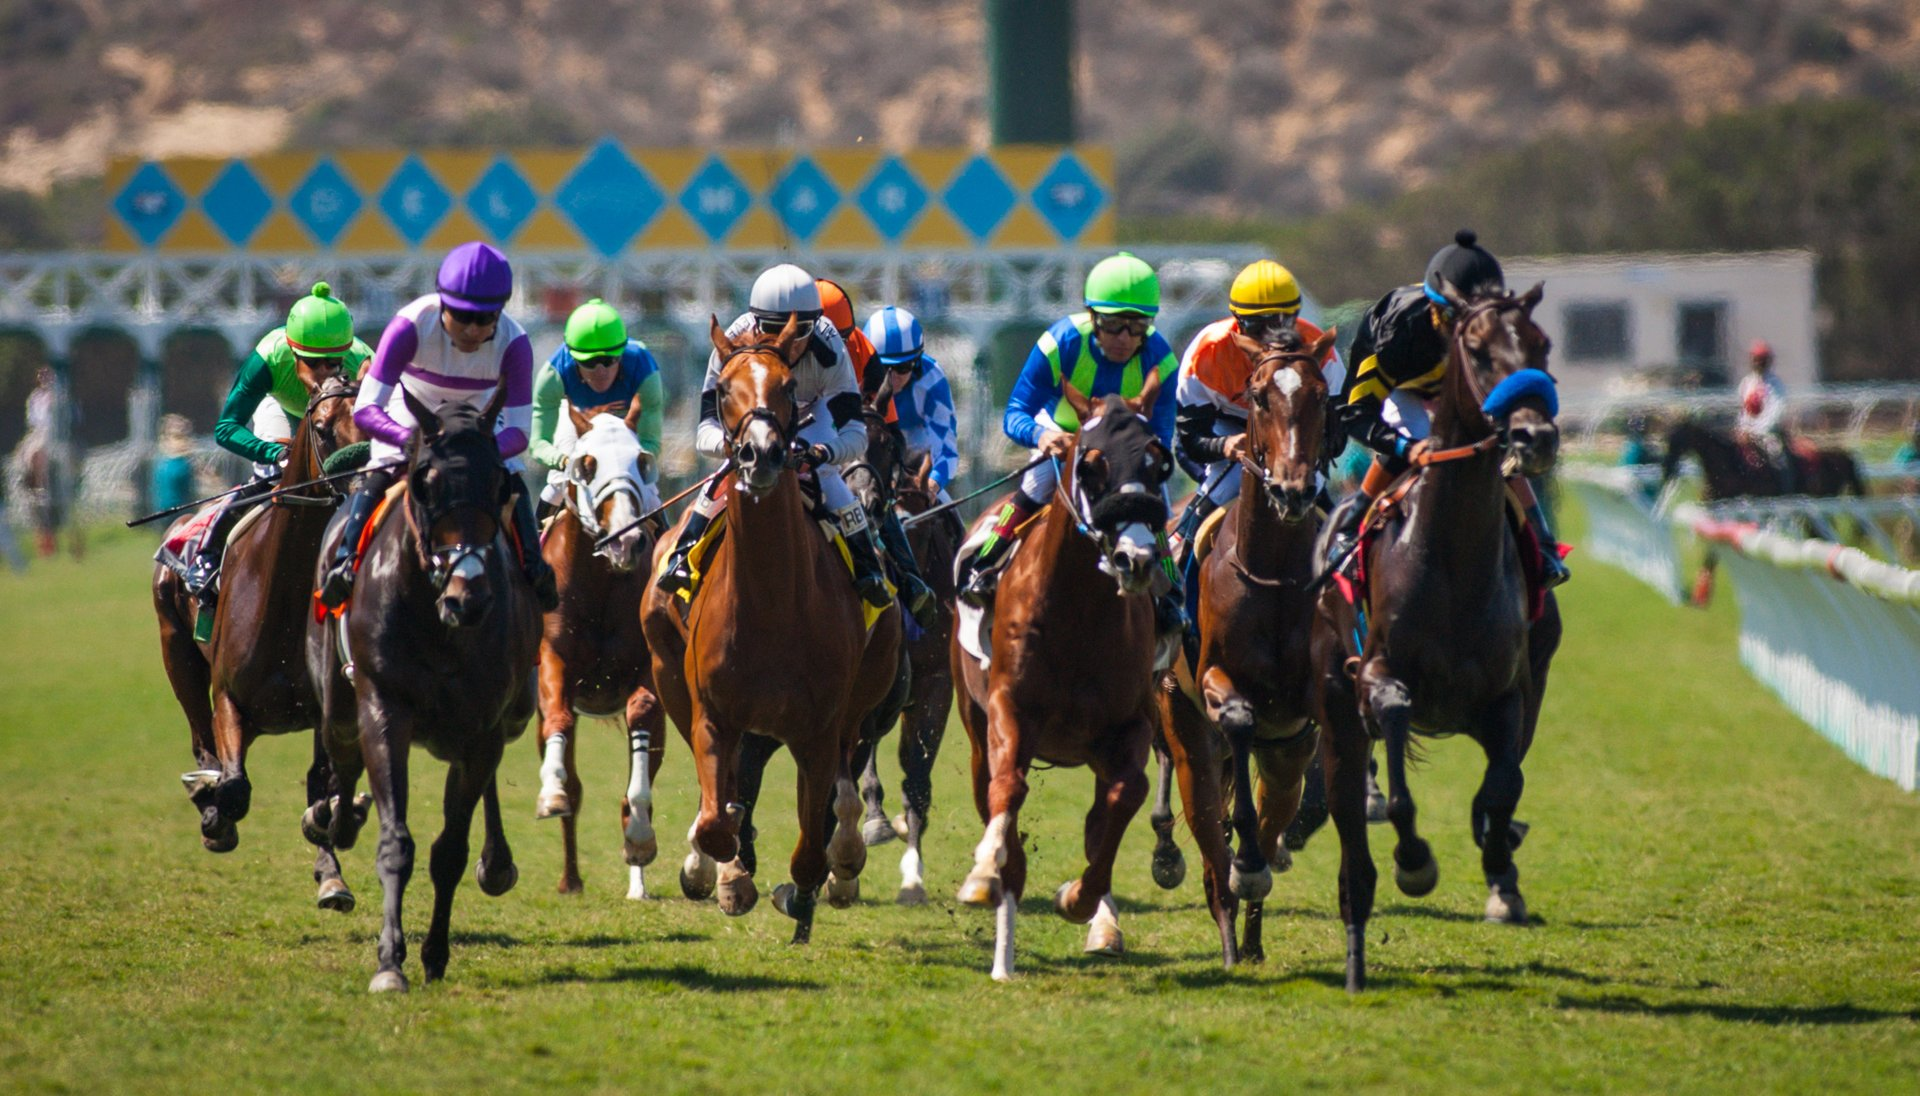 Del Mar Racing Season in San Diego 2020 - Best Time